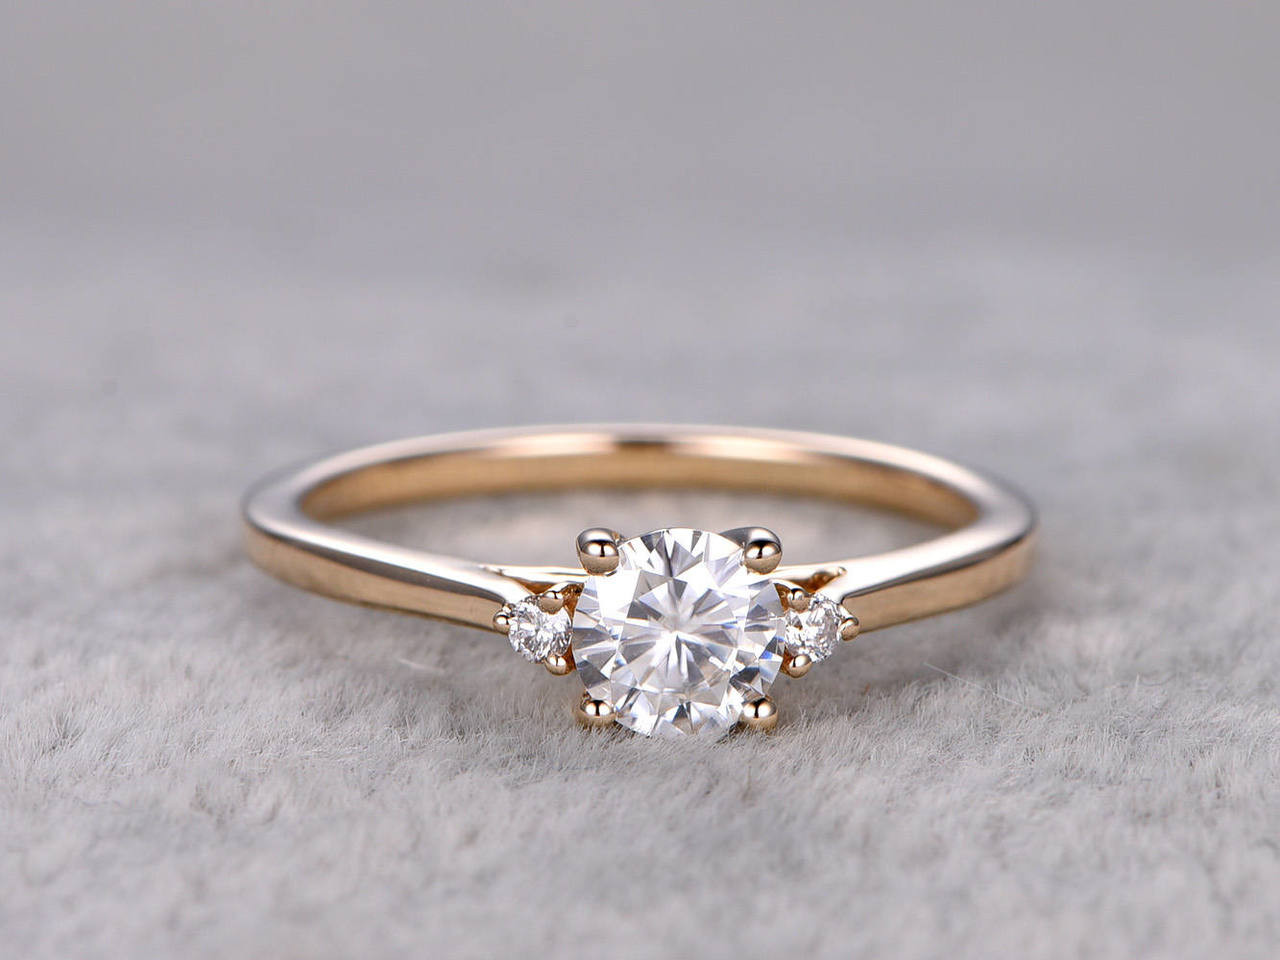 watches sparkling moissanite jewelry cushion ring product rings diamond engagement luxury airbrush wedding